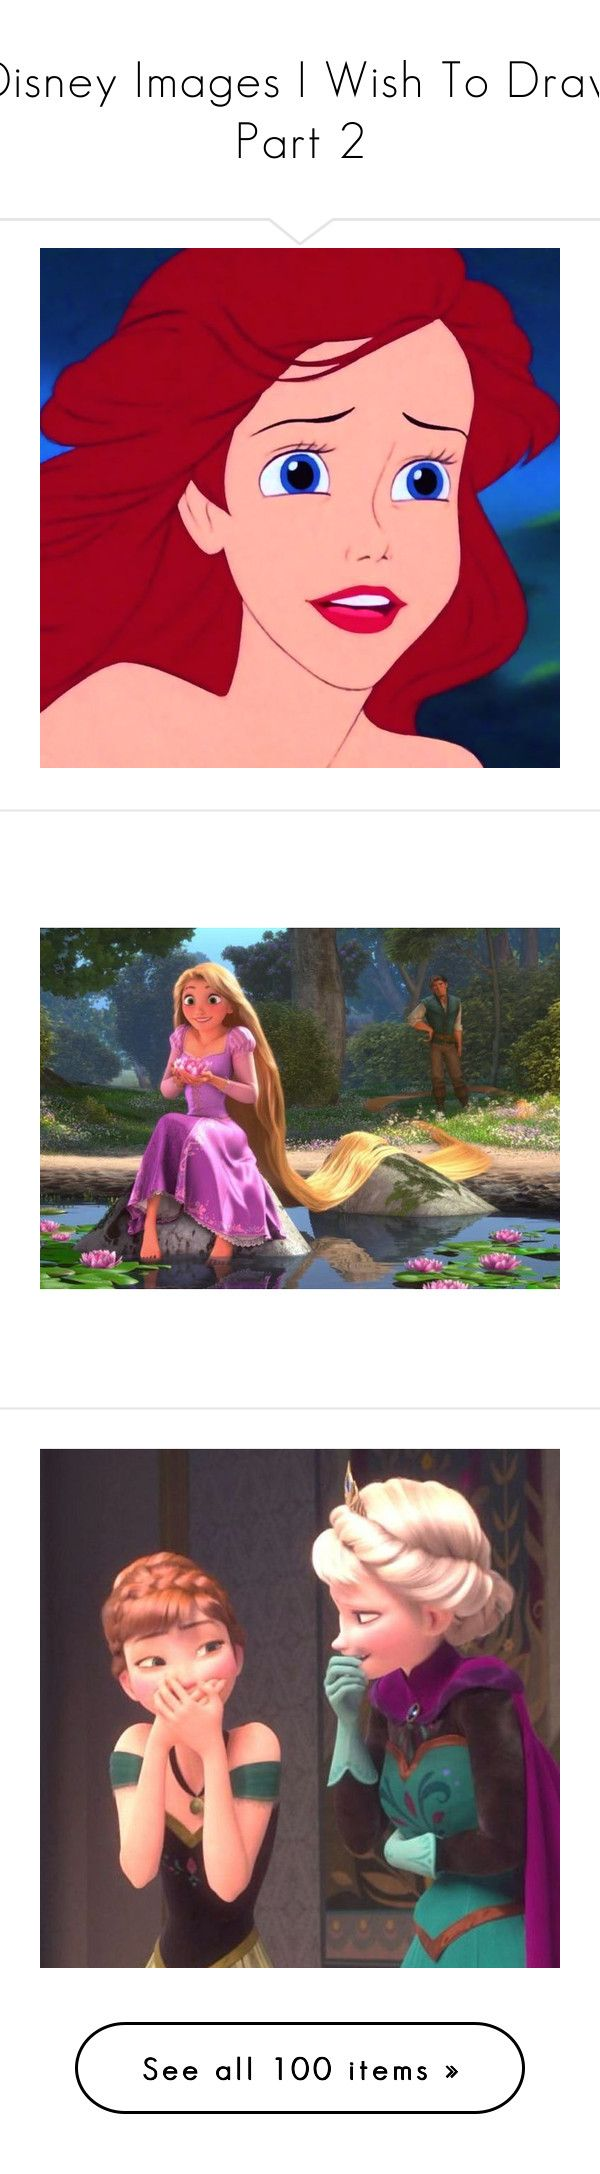 """""""Disney Images I Wish To Draw Part 2"""" by fire-and-daisies ❤ liked on Polyvore featuring disney, icons, the little mermaid, ariel, backgrounds, tangled, pictures, frozen, -pictures and icon pictures"""